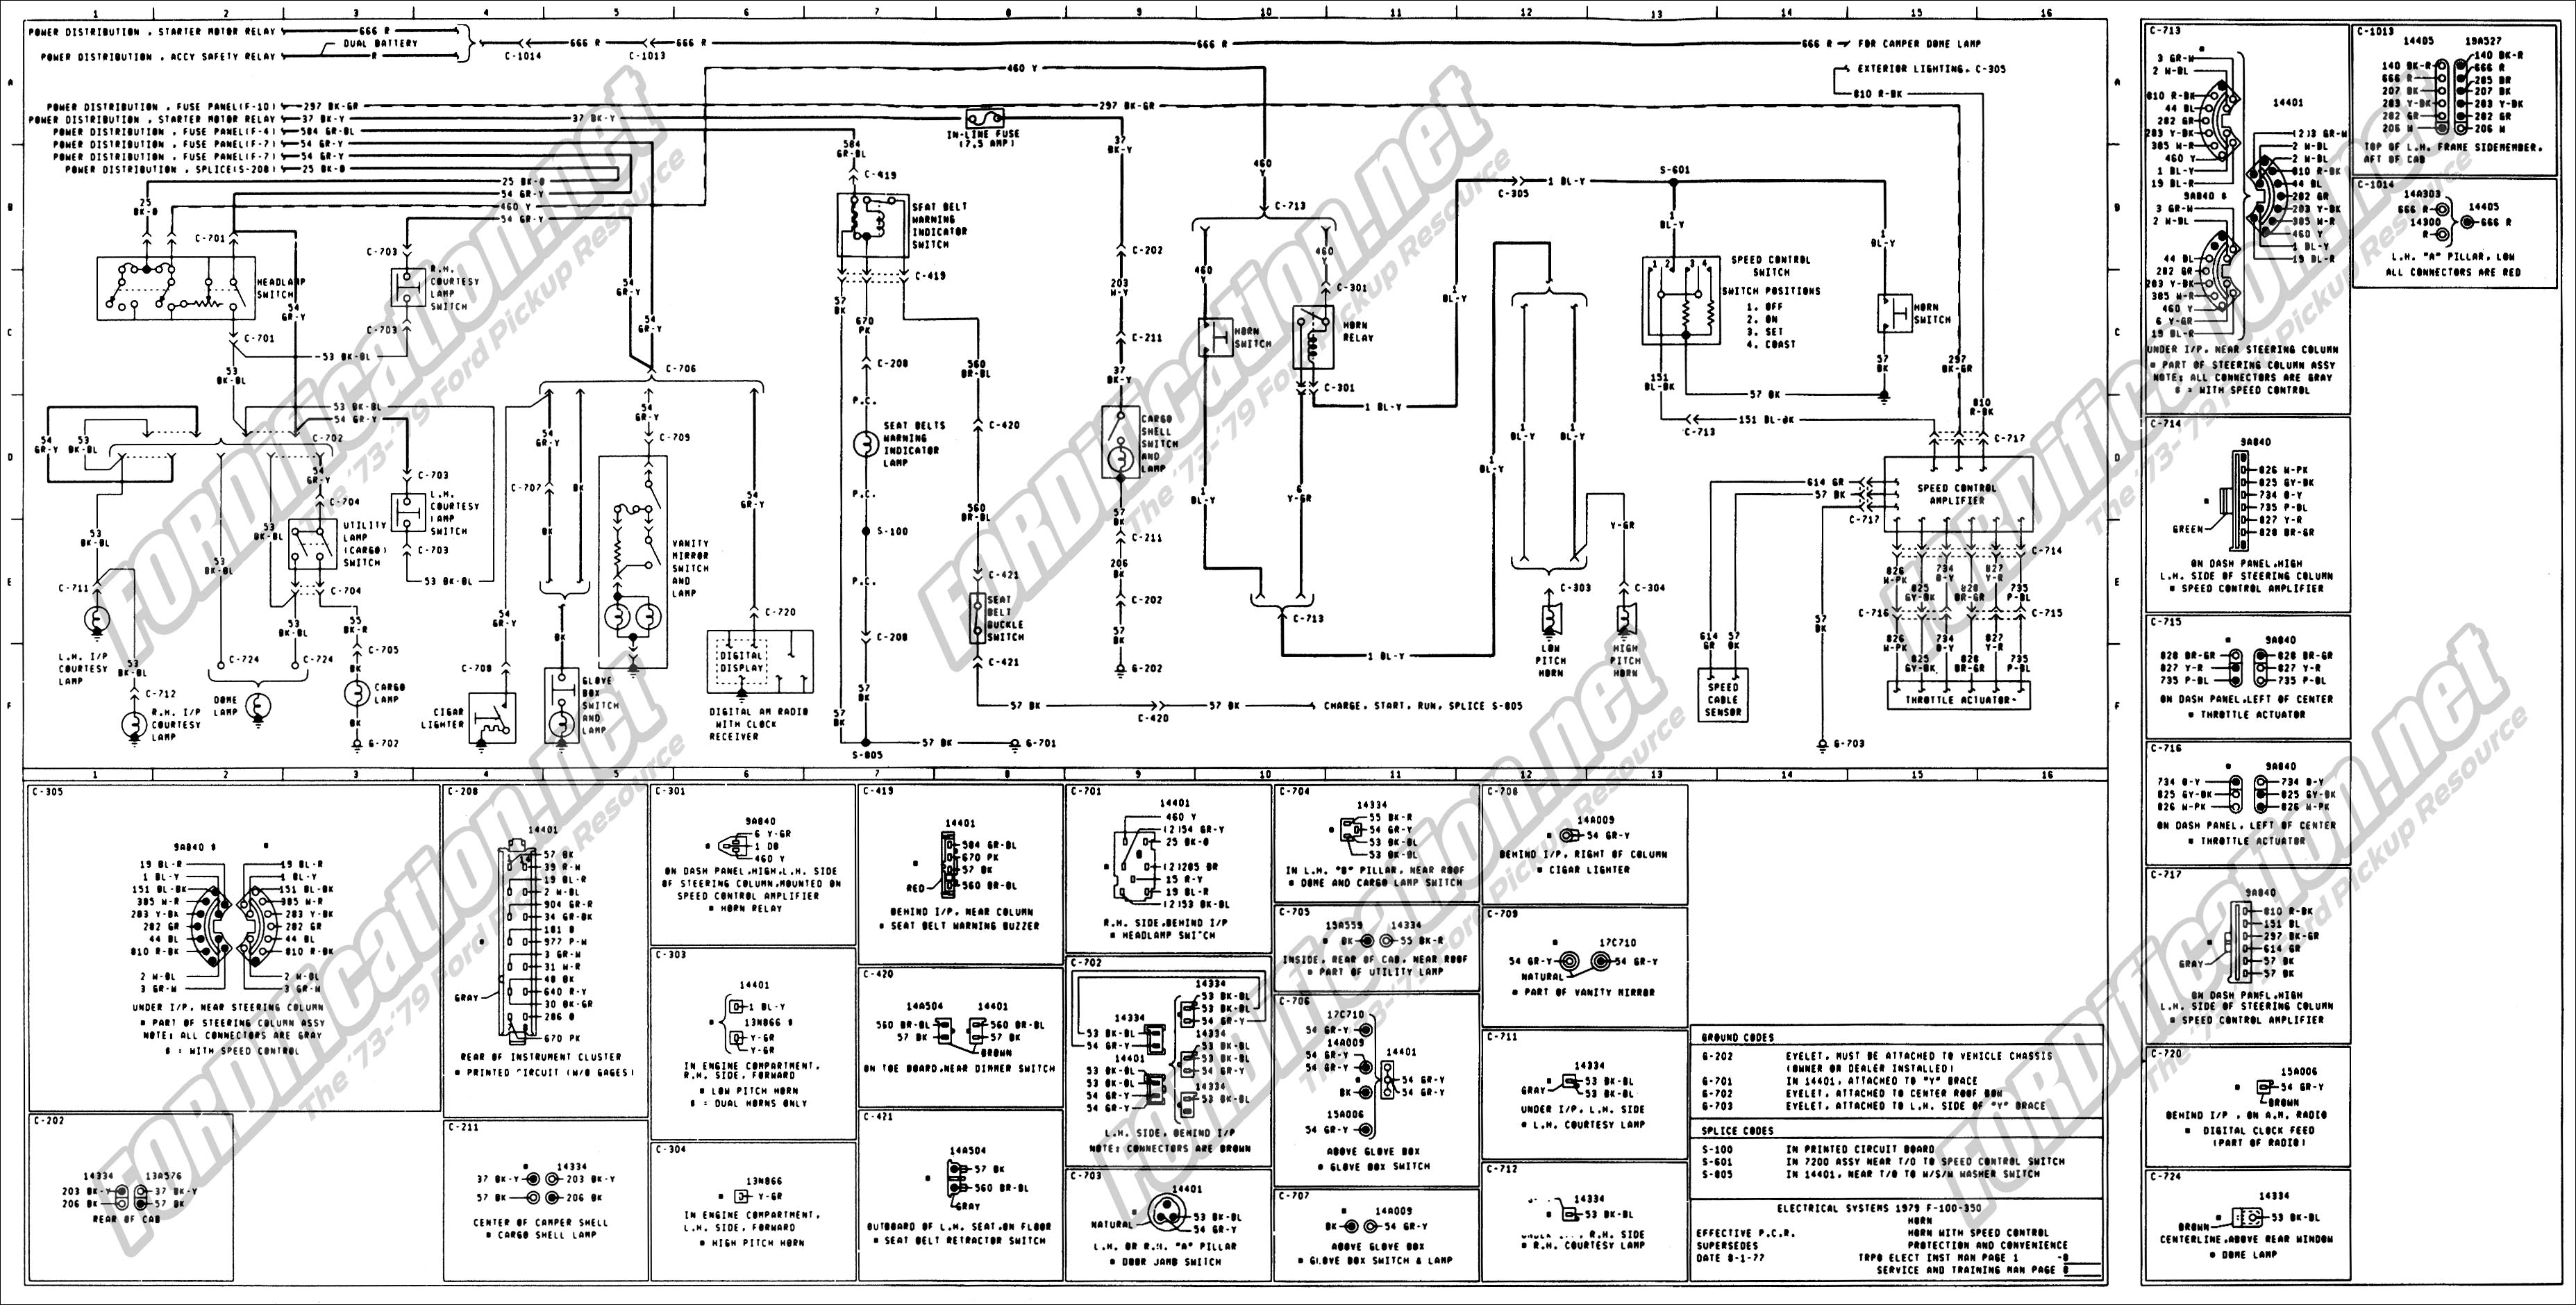 1976 F150 Wiring Diagram - Home Wiring Diagrams Jeep Wire Harness Diagram For on jeep wiring schematic, jeep cj7 wiring-diagram, jeep fuel tank diagram, jeep trailer wiring diagram, jeep stereo wiring diagram, jeep ignition wiring diagrams, jeep headlight diagram, jeep wrangler wiring harness, jeep lights diagram, jeep rear differential diagram, jeep pump diagram, jeep alternator wiring diagram, jeep electrical diagram, jeep 4.0 wiring harness, 1990 jeep wiring diagram, jeep radio diagram, jeep voltage regulator diagram, jeep wheel diagram, 95 jeep cherokee wiring diagram, jeep horn diagram,